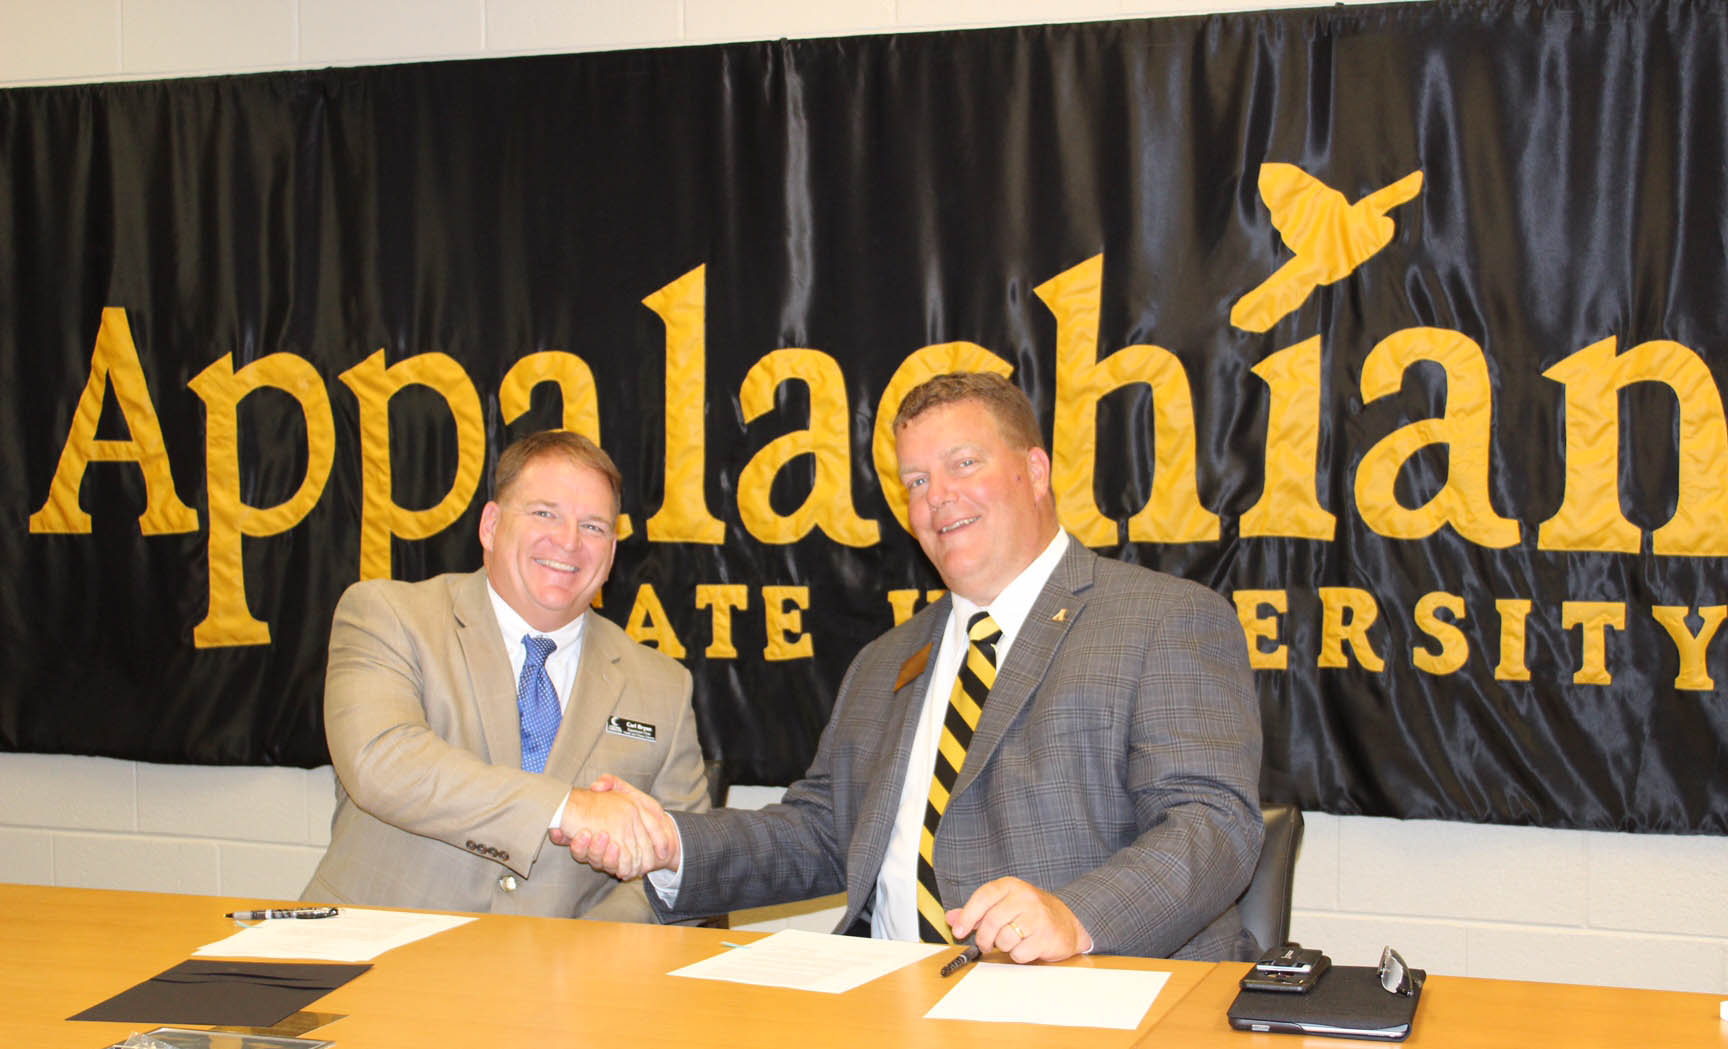 CCCC's Health & Fitness Science signs articulation with Appalachian State University